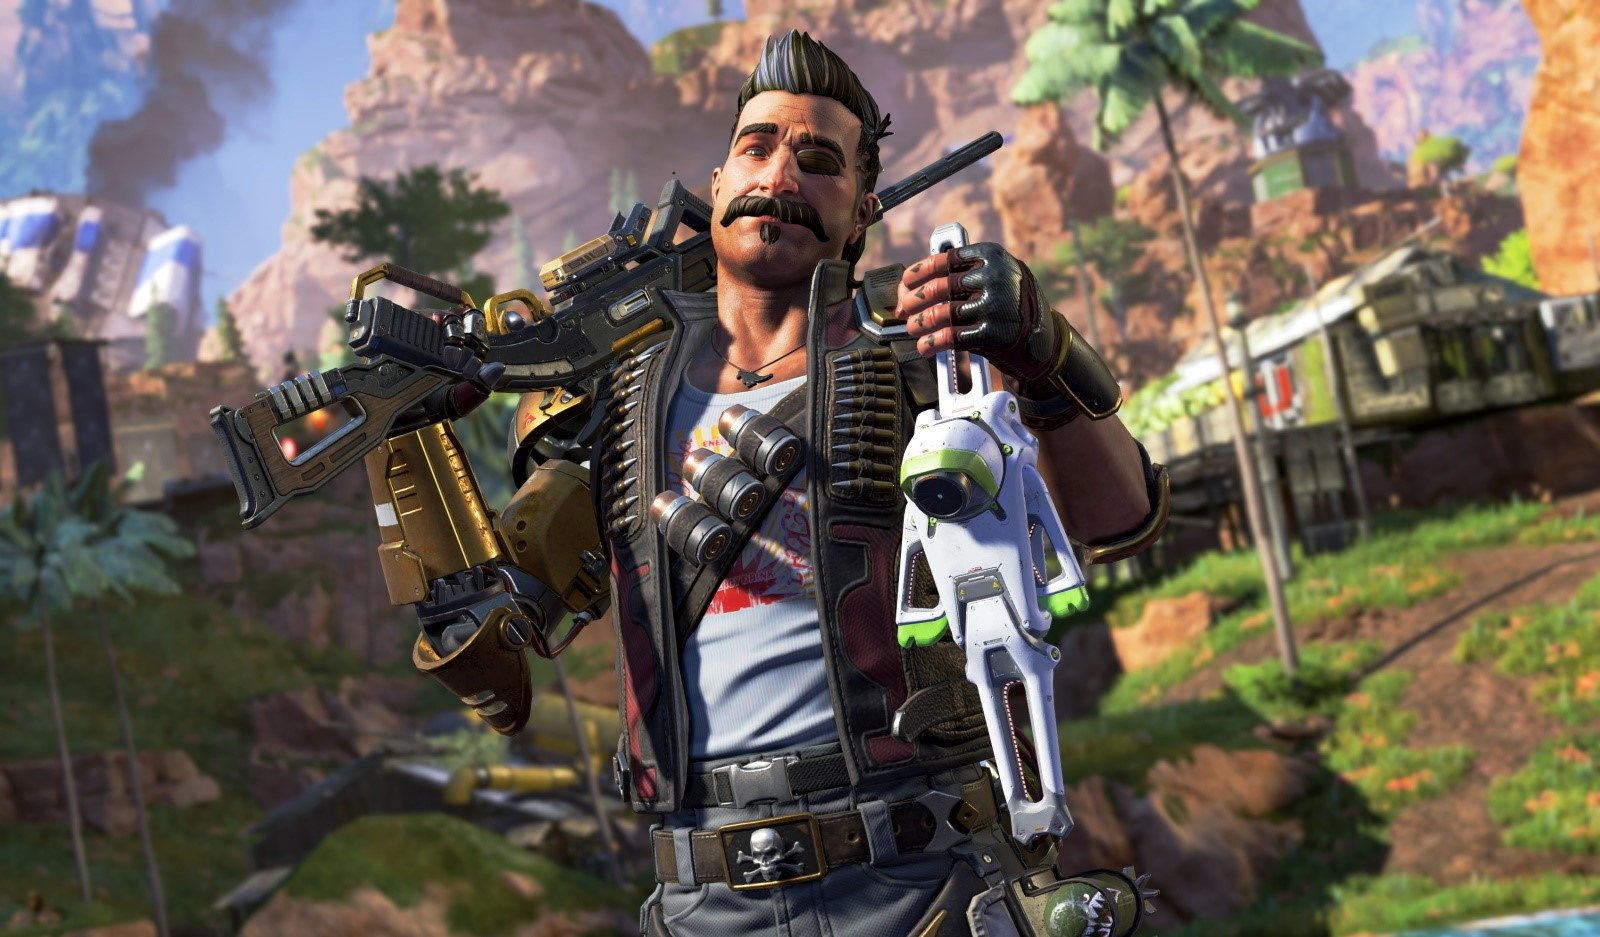 'Apex Legends' comes to Nintendo Switch on March 9th